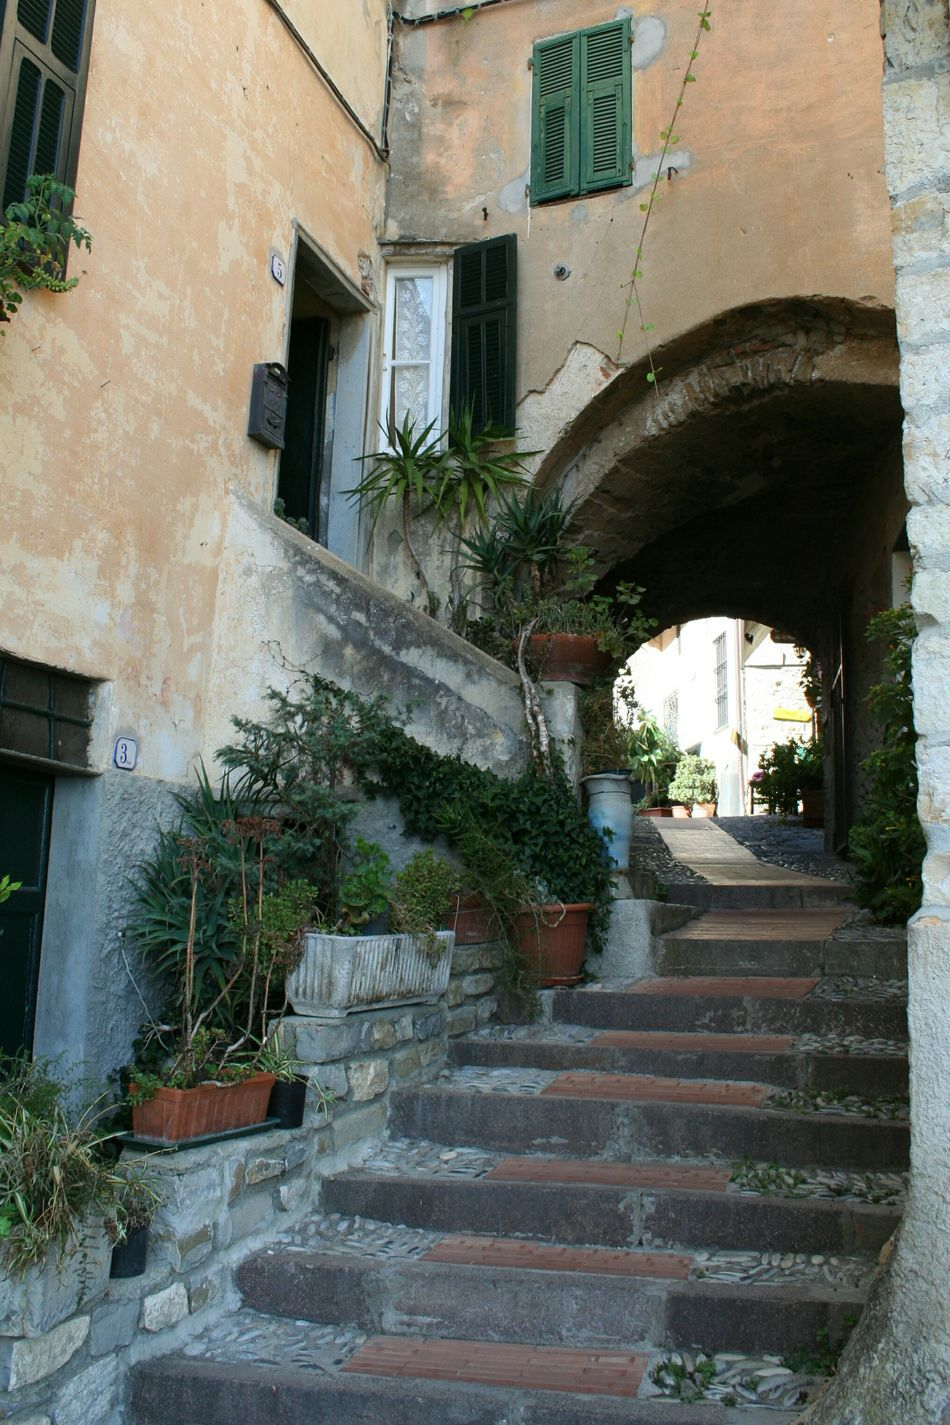 Building Exterior Architecture Built Structure No People Outdoors Tree Steps Day Old Street Narrow Street Vicolo Del Paese Mediterranean Village Travel Destinations Italian Village  Architectural Details Old Buildings Liguria,Italy Arch Architectural Detail Blooming In The Street Freshness EyeEmNewHere